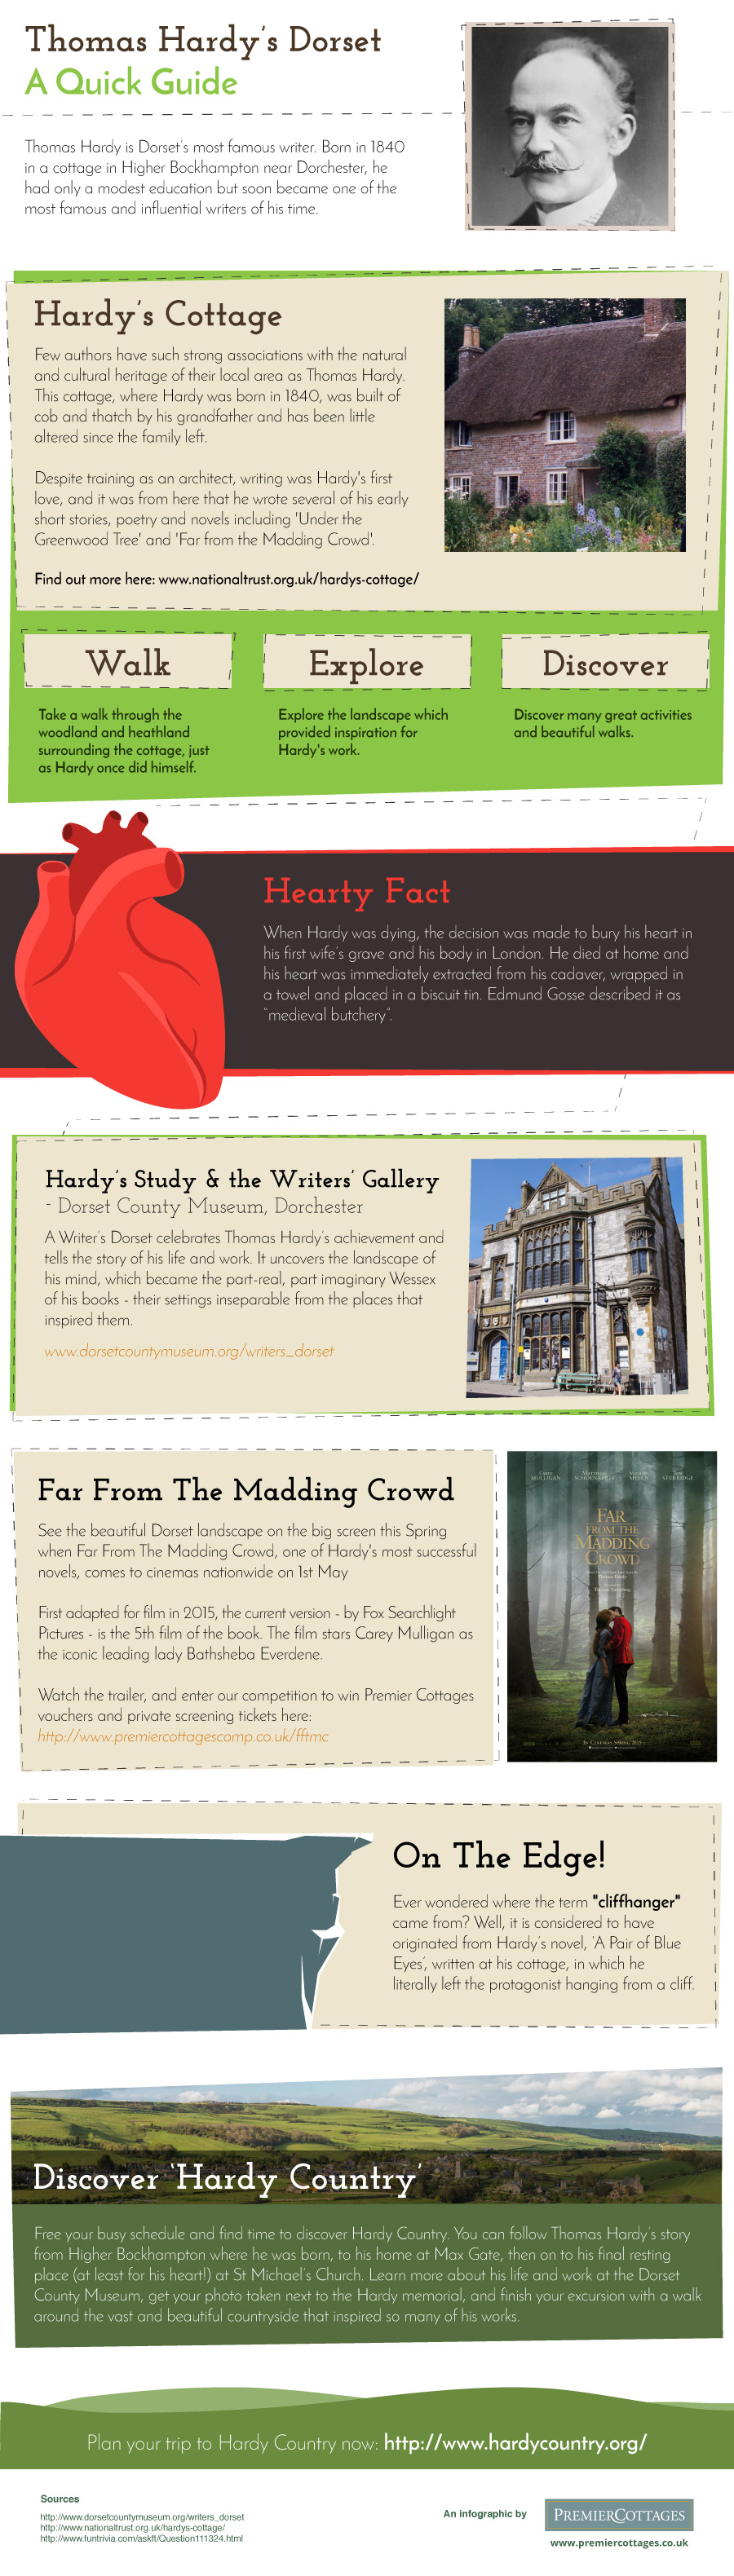 Thomas Hardy factsheet